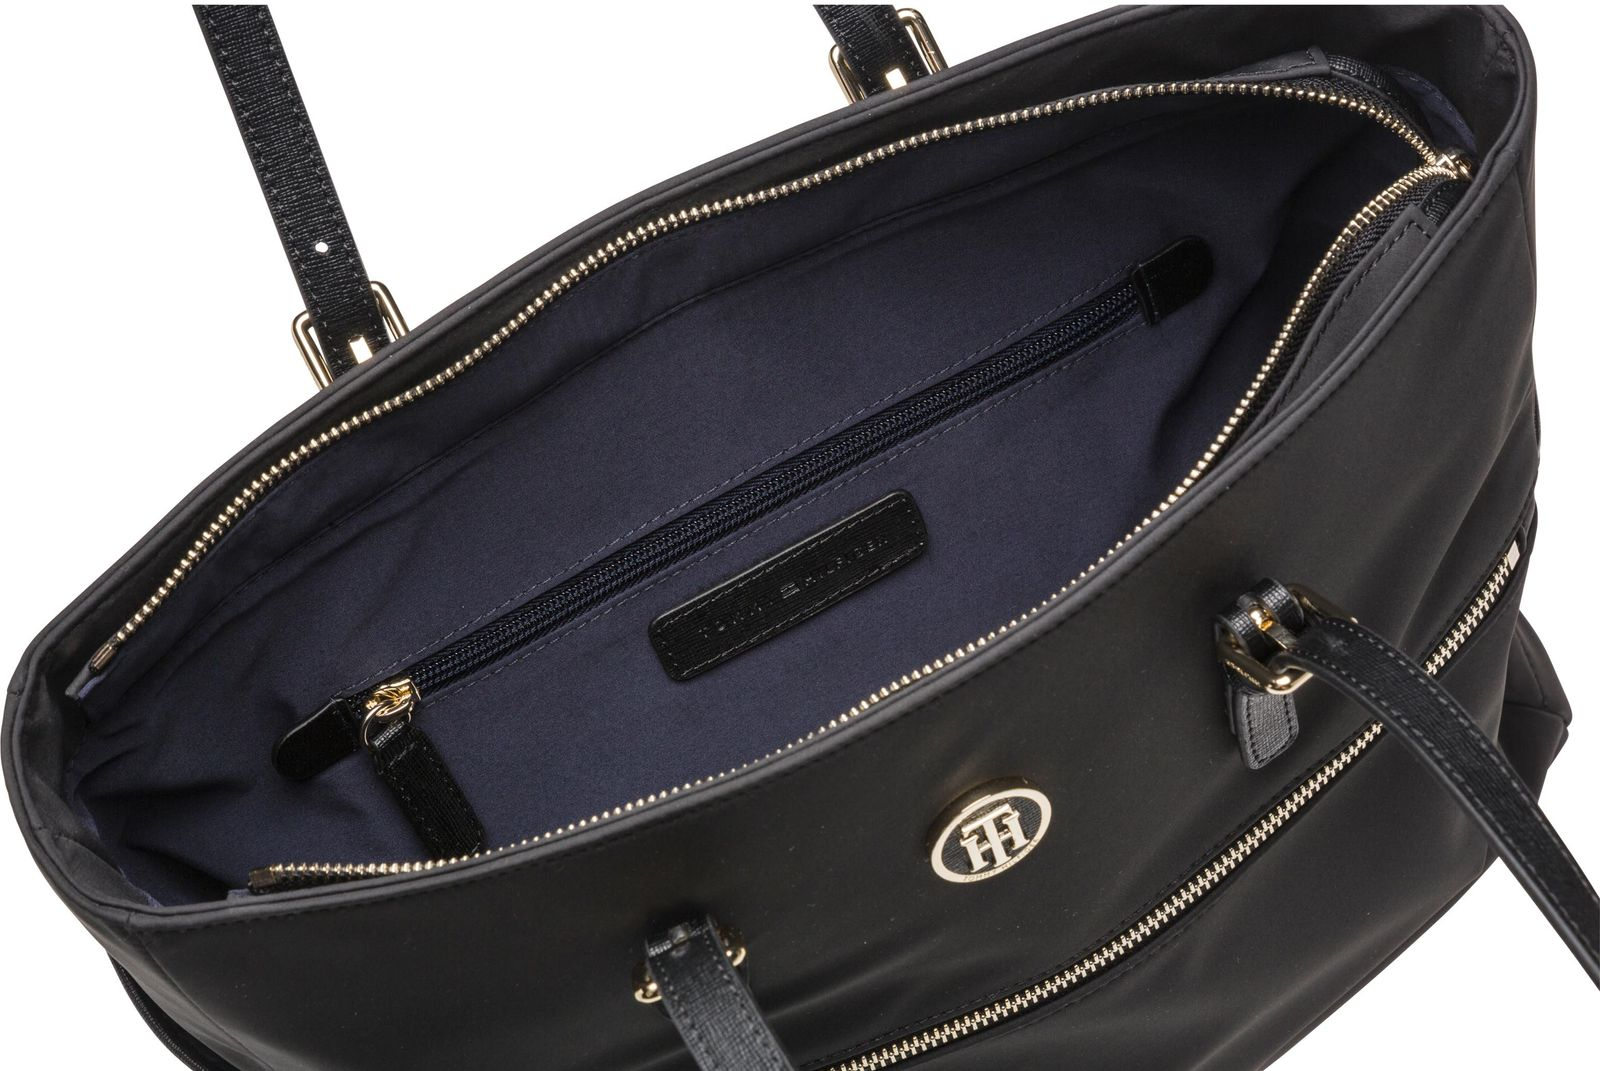 71bc6f7b3d8 TOMMY HILFIGER Chic Nylon Tote Black · More of TOMMY HILFIGER Questions  about the item? Seen this item for a more favorable price?